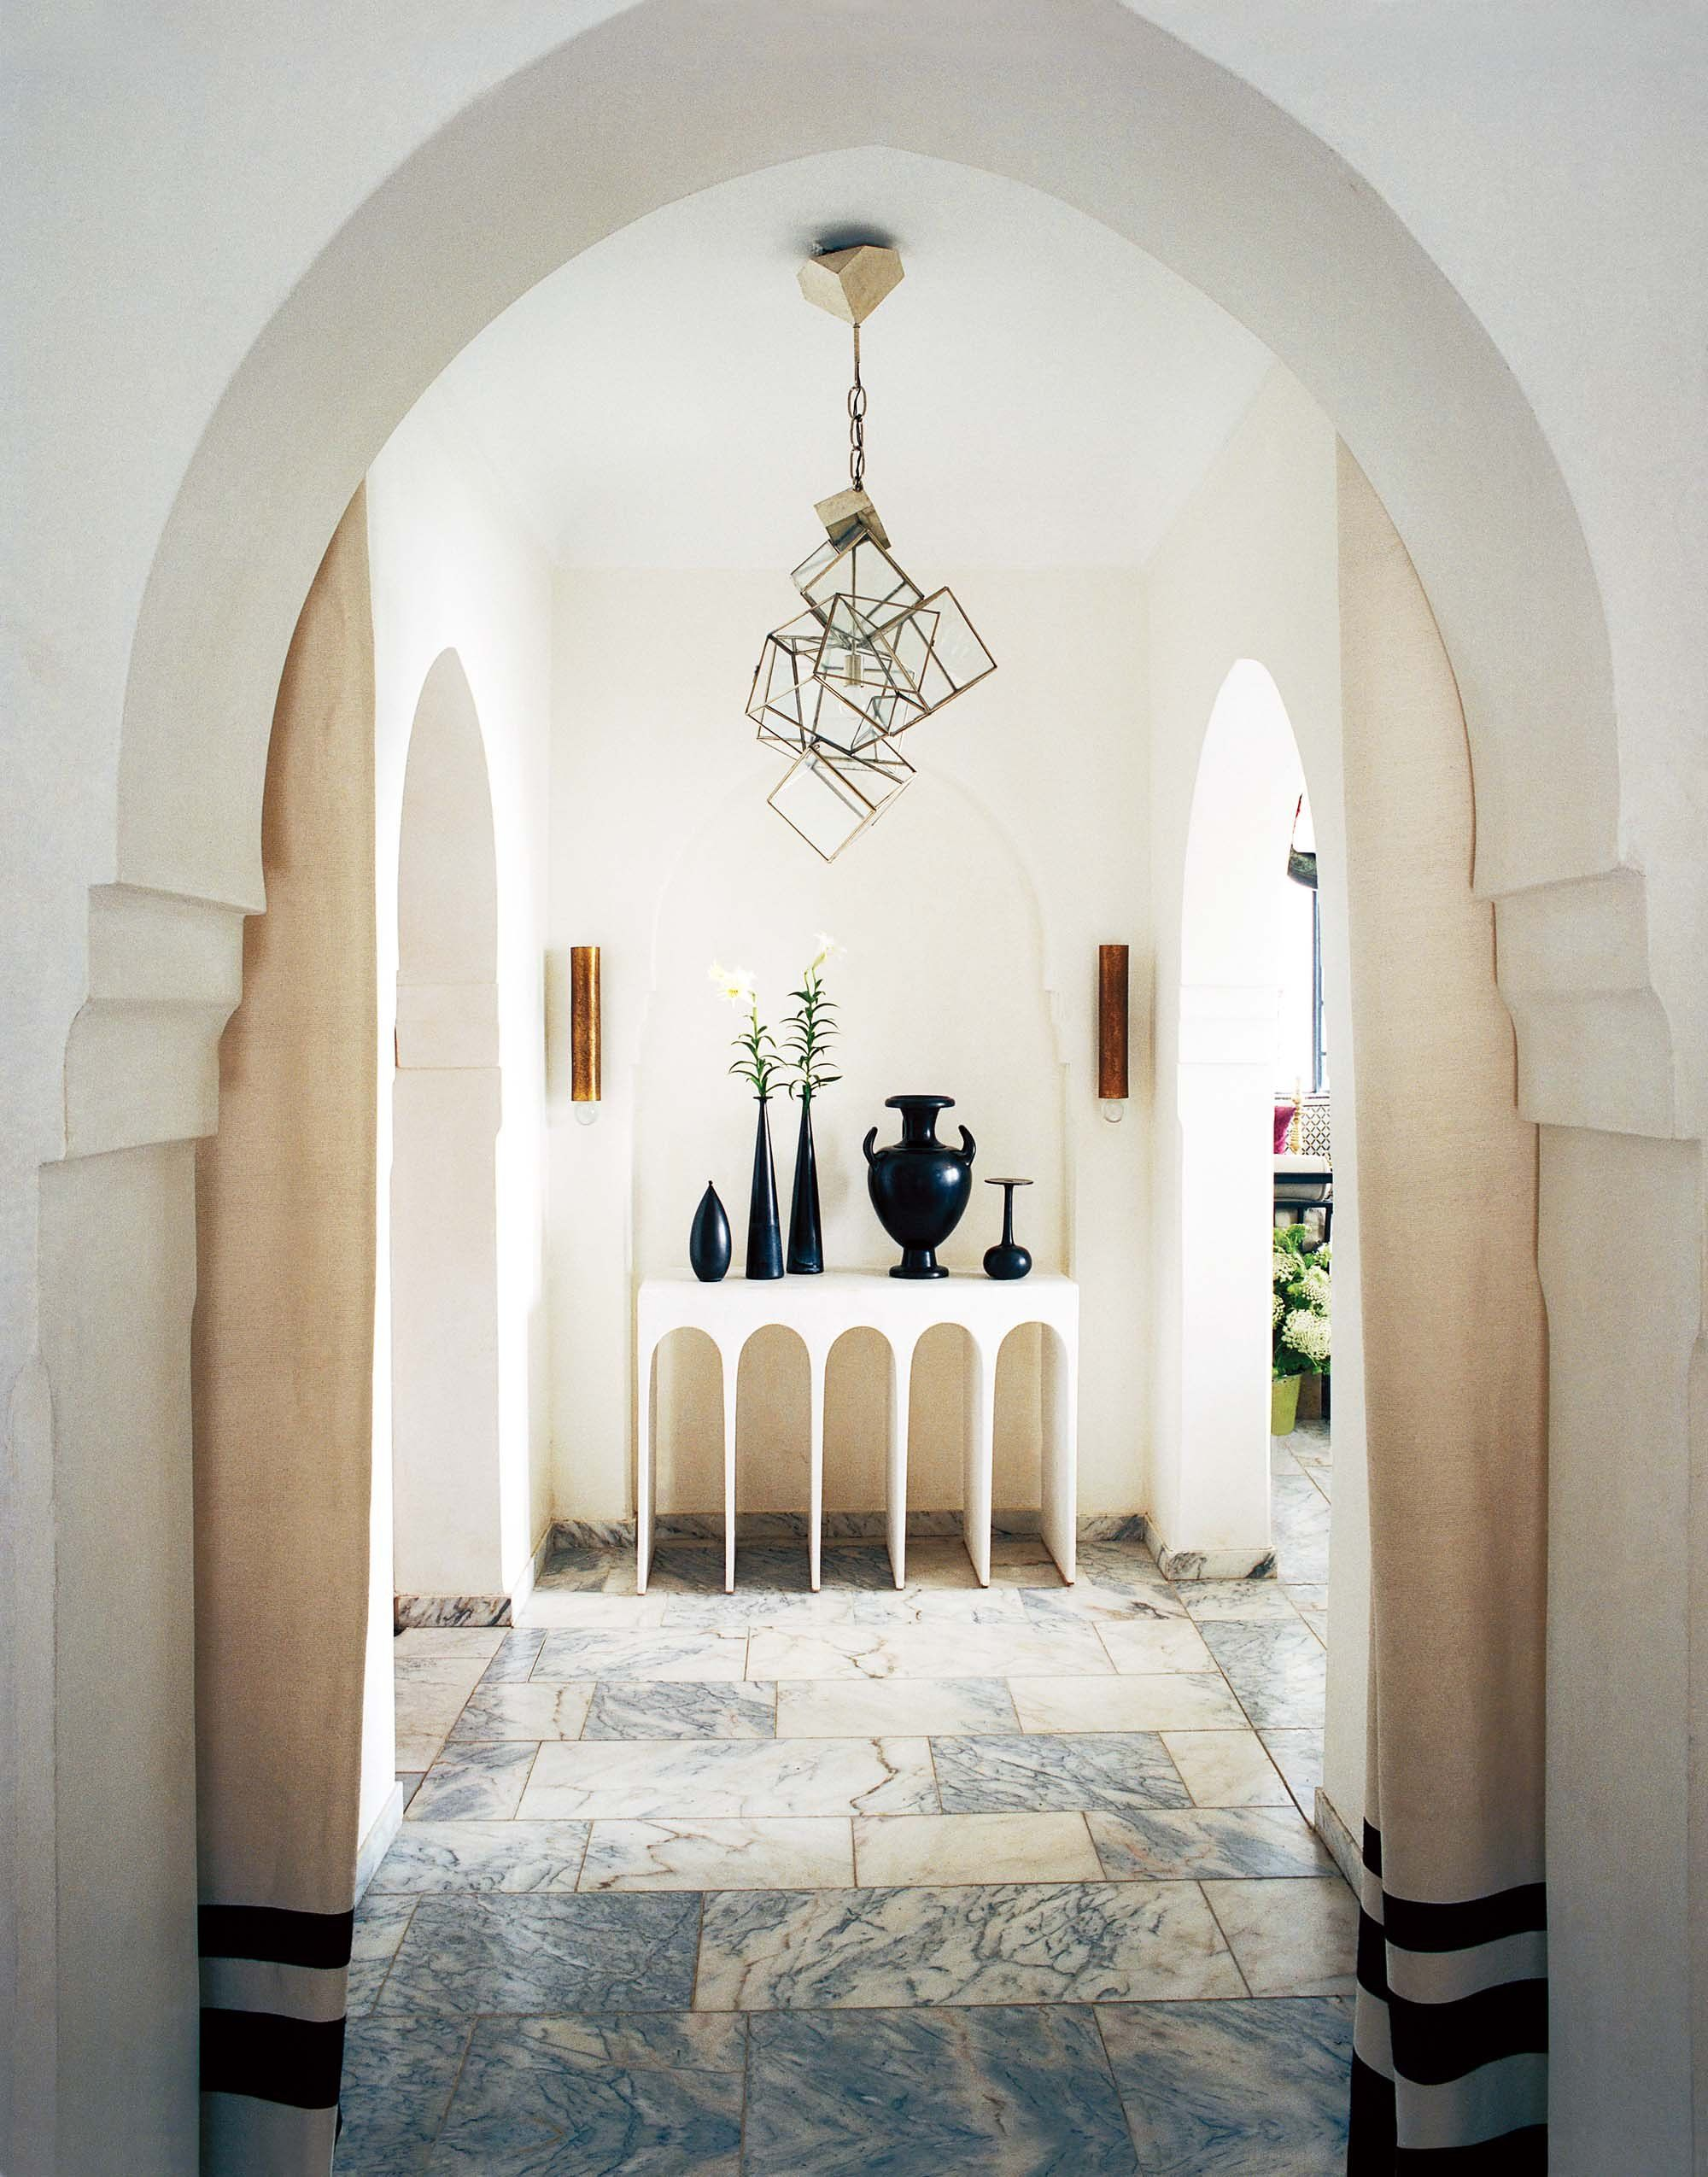 The Moorish arches give away the Moroccan location of designer Bruno Frisoni's Tangier retreat, and the light fixture and arched console, designed by Frisoni's partner, Hervé Van der Straeten, bring a modernity to the historic house.